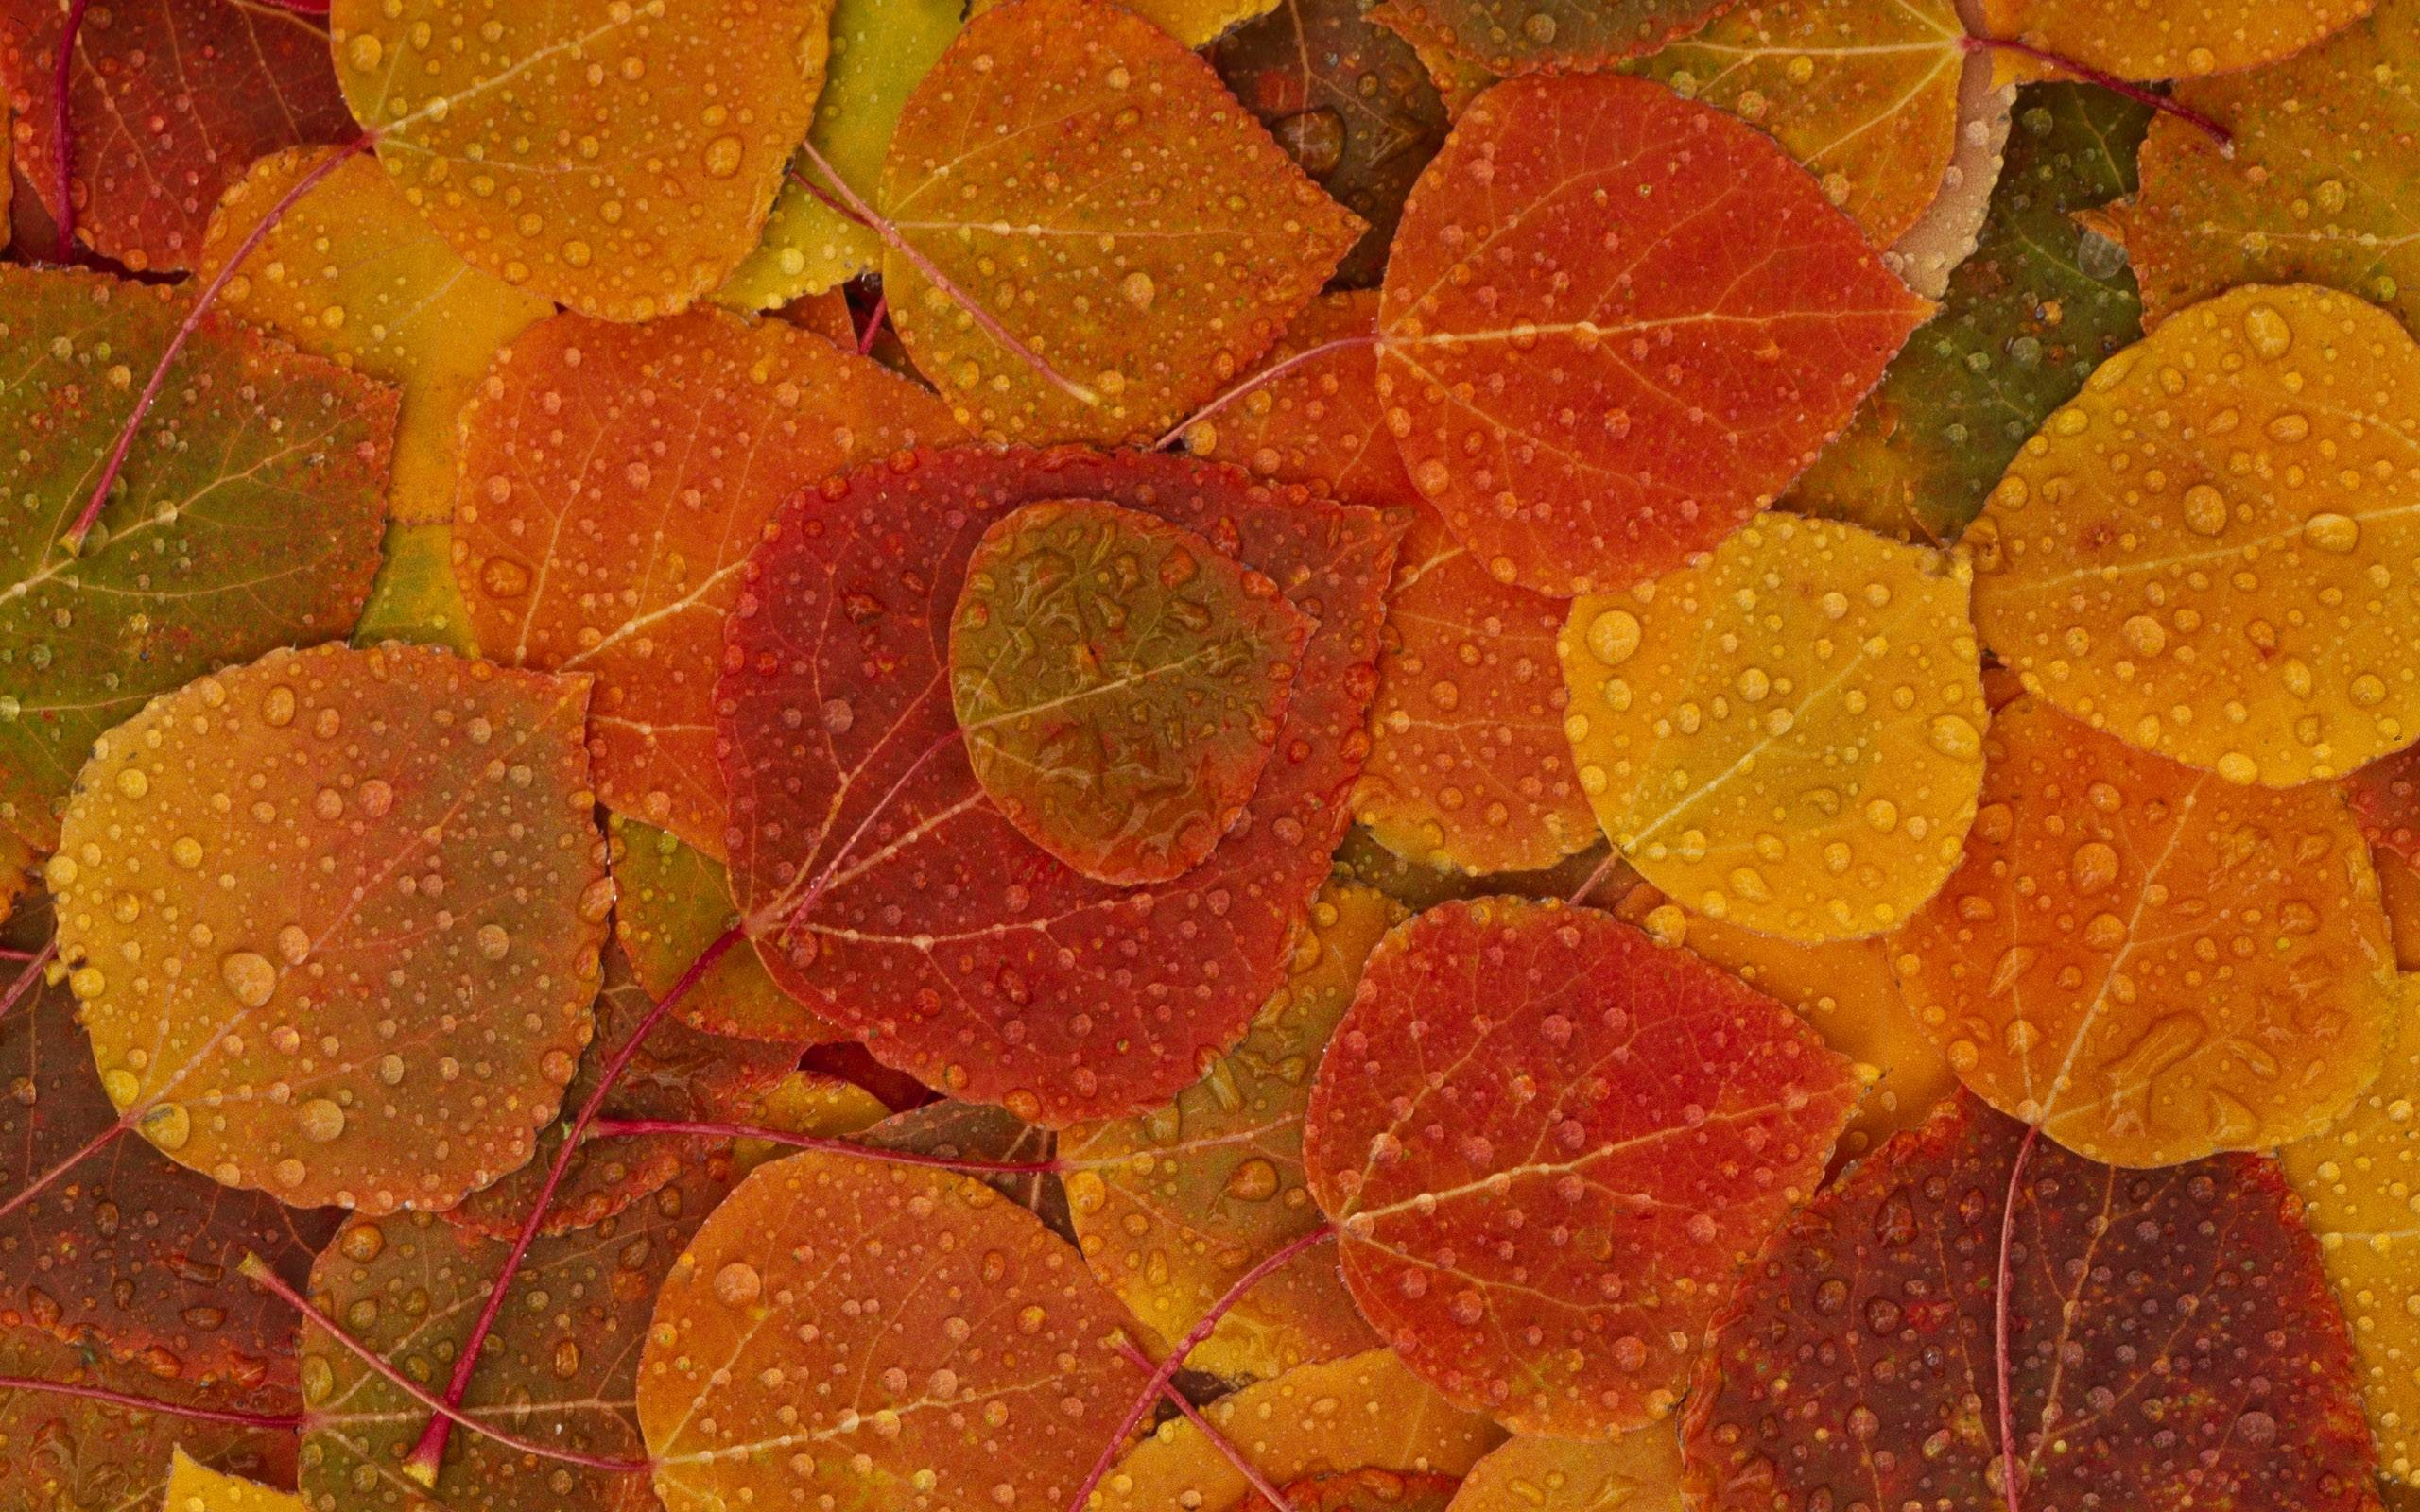 Fall Leaves On The Autumn Wallpaper Background #6787 Wallpaper .